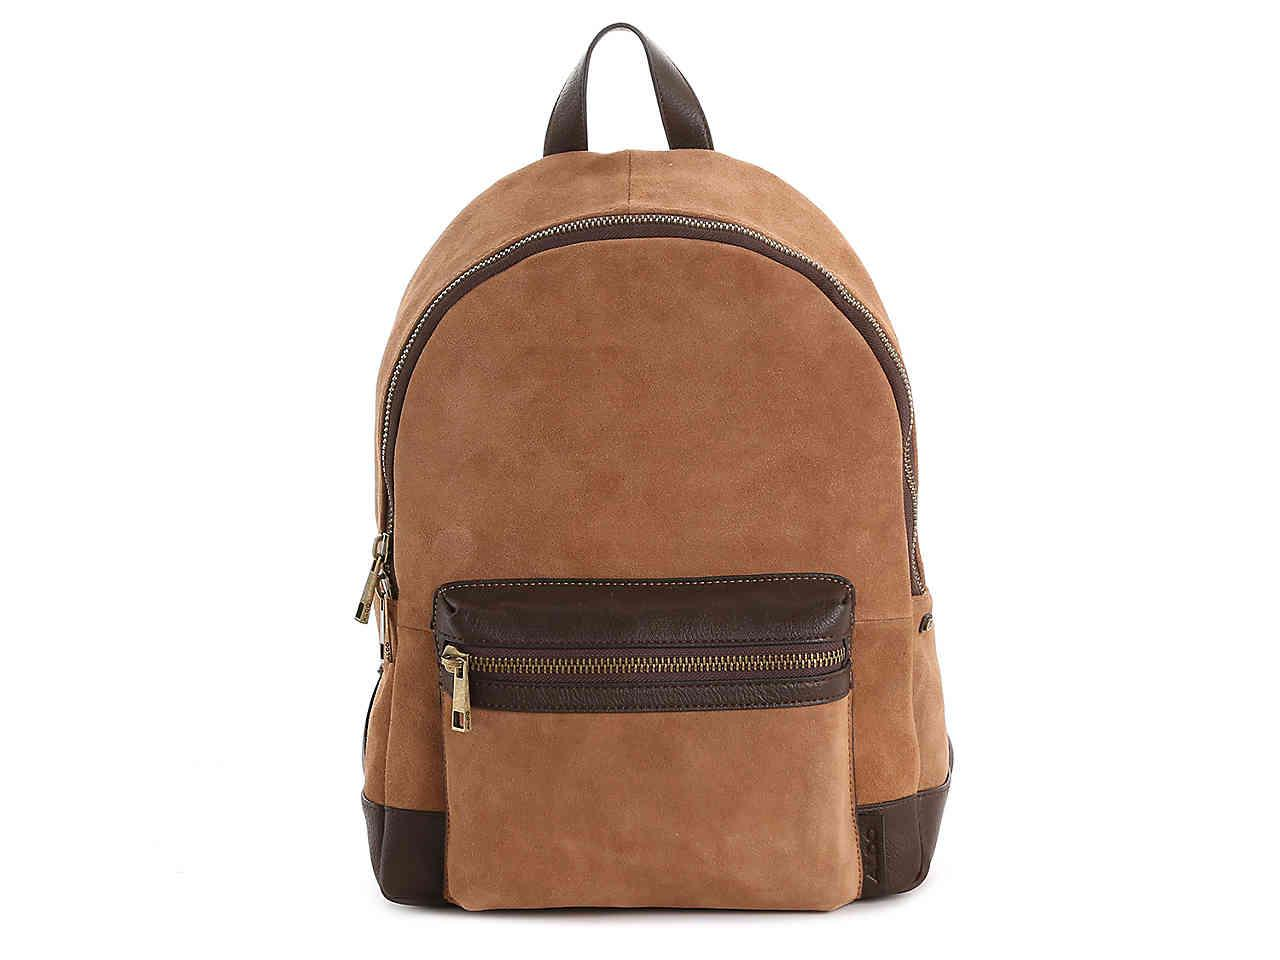 e70b5bcf6c2 Lyst - ALDO Allerona Leather Backpack in Brown for Men